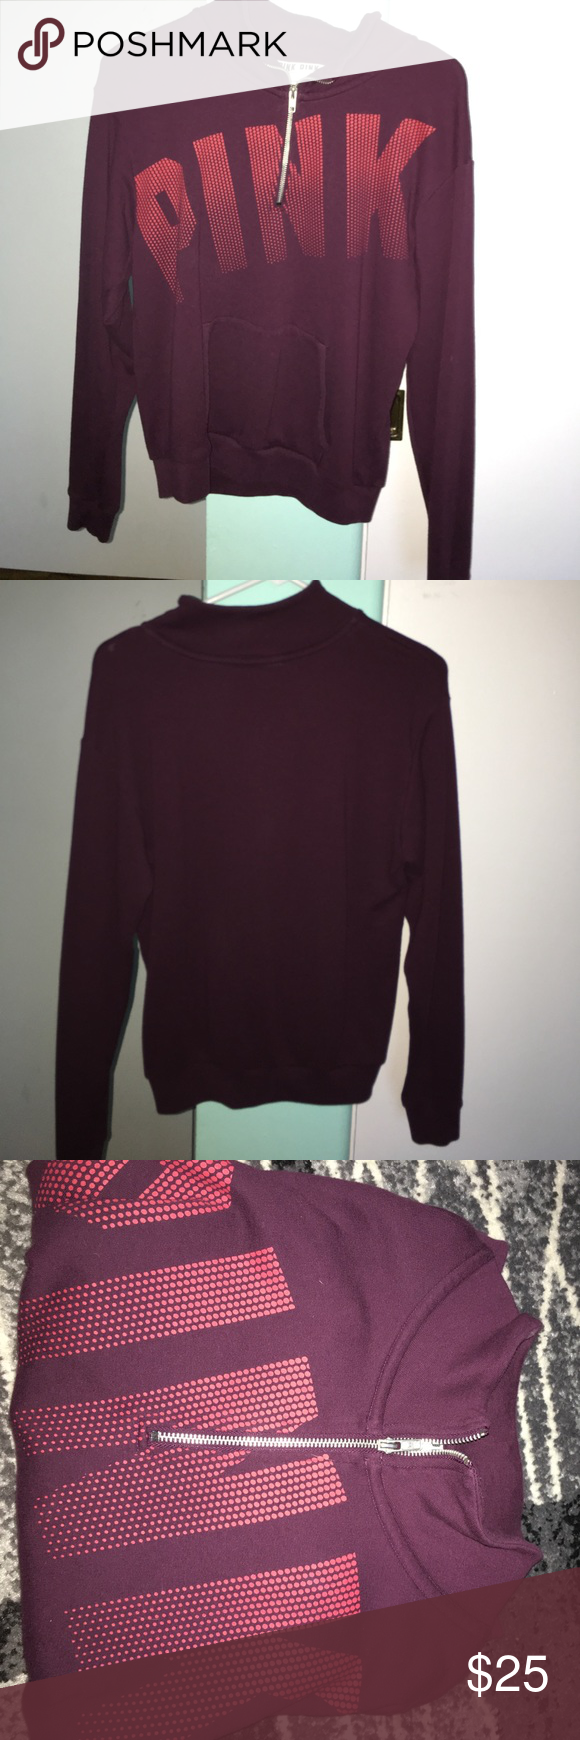 Burgundy VS PINK half zip sweater Brand new condition, worn once ...